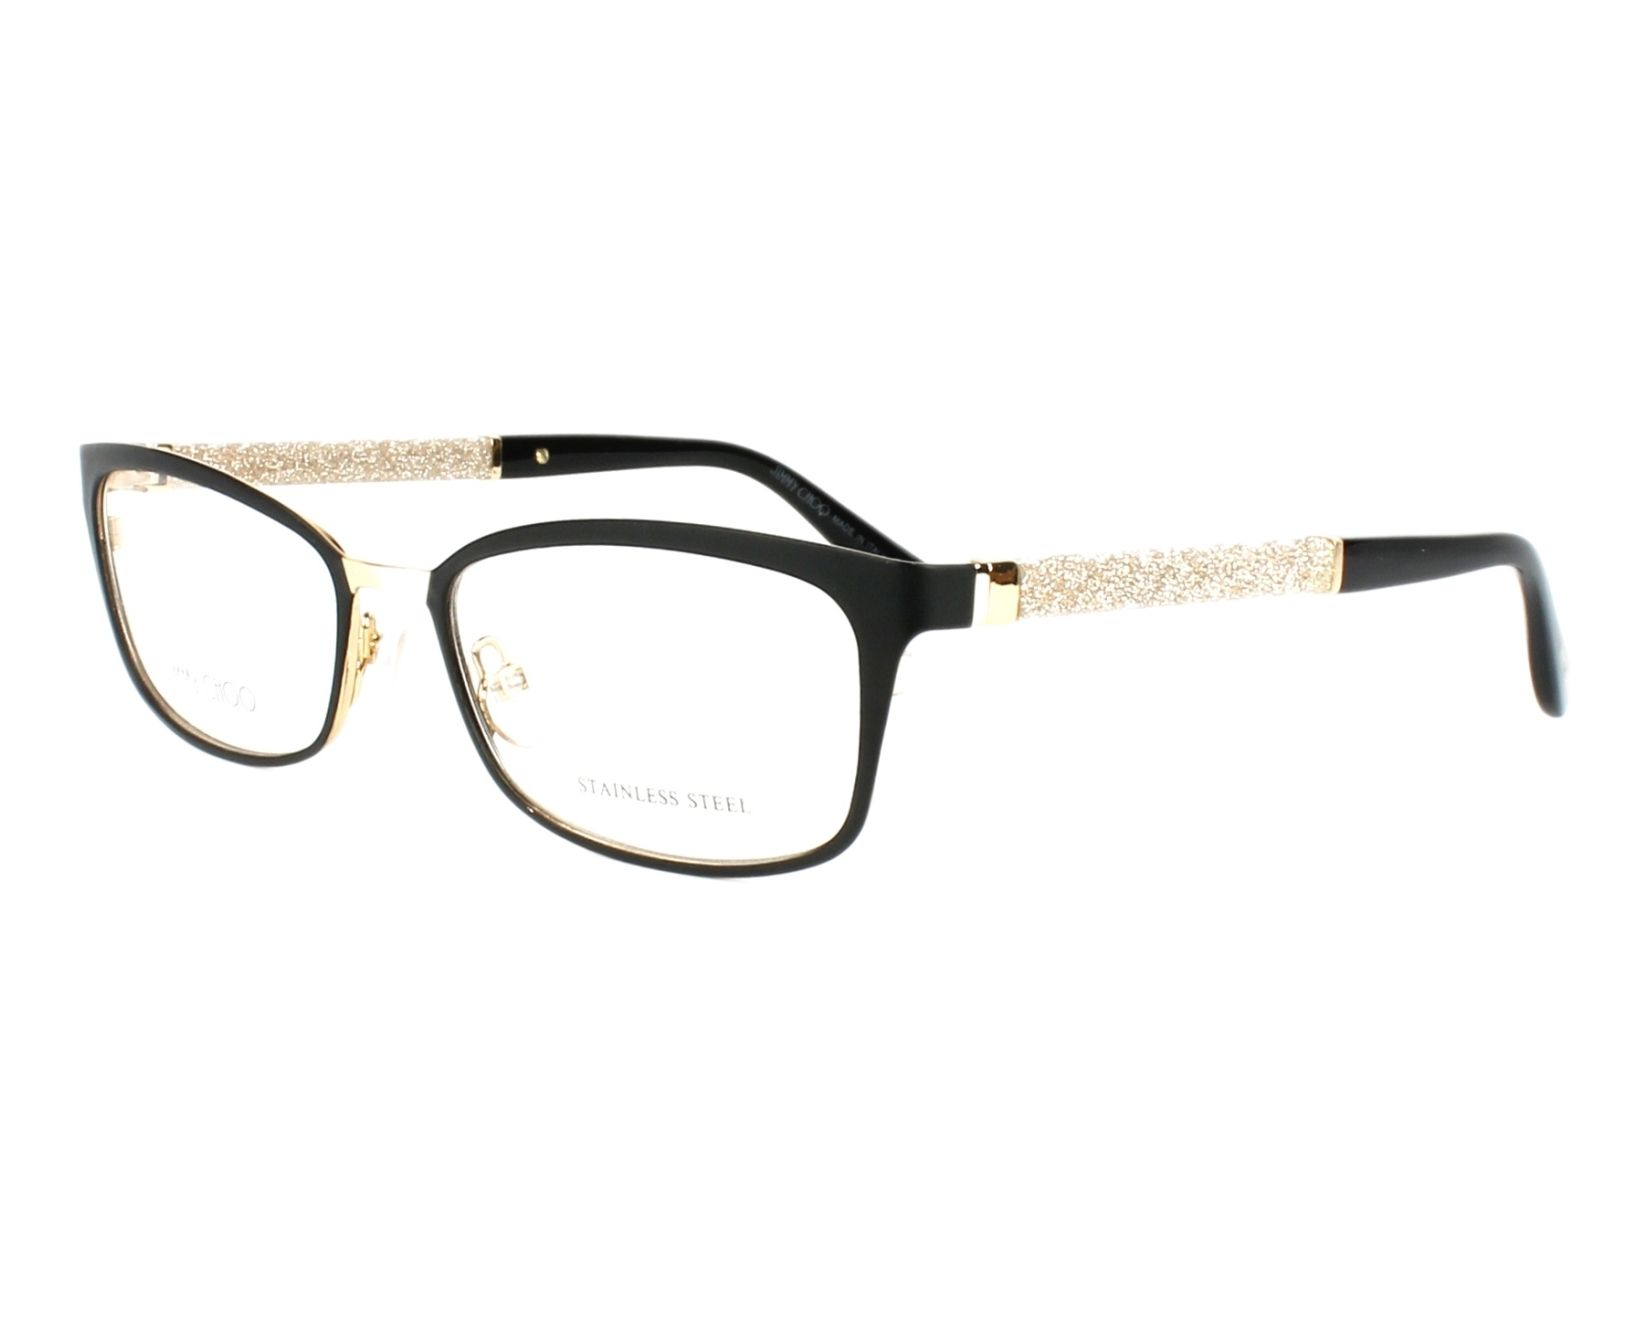 030ad6300aab eyeglasses Jimmy Choo JC-166 LVC - Black Grey profile view